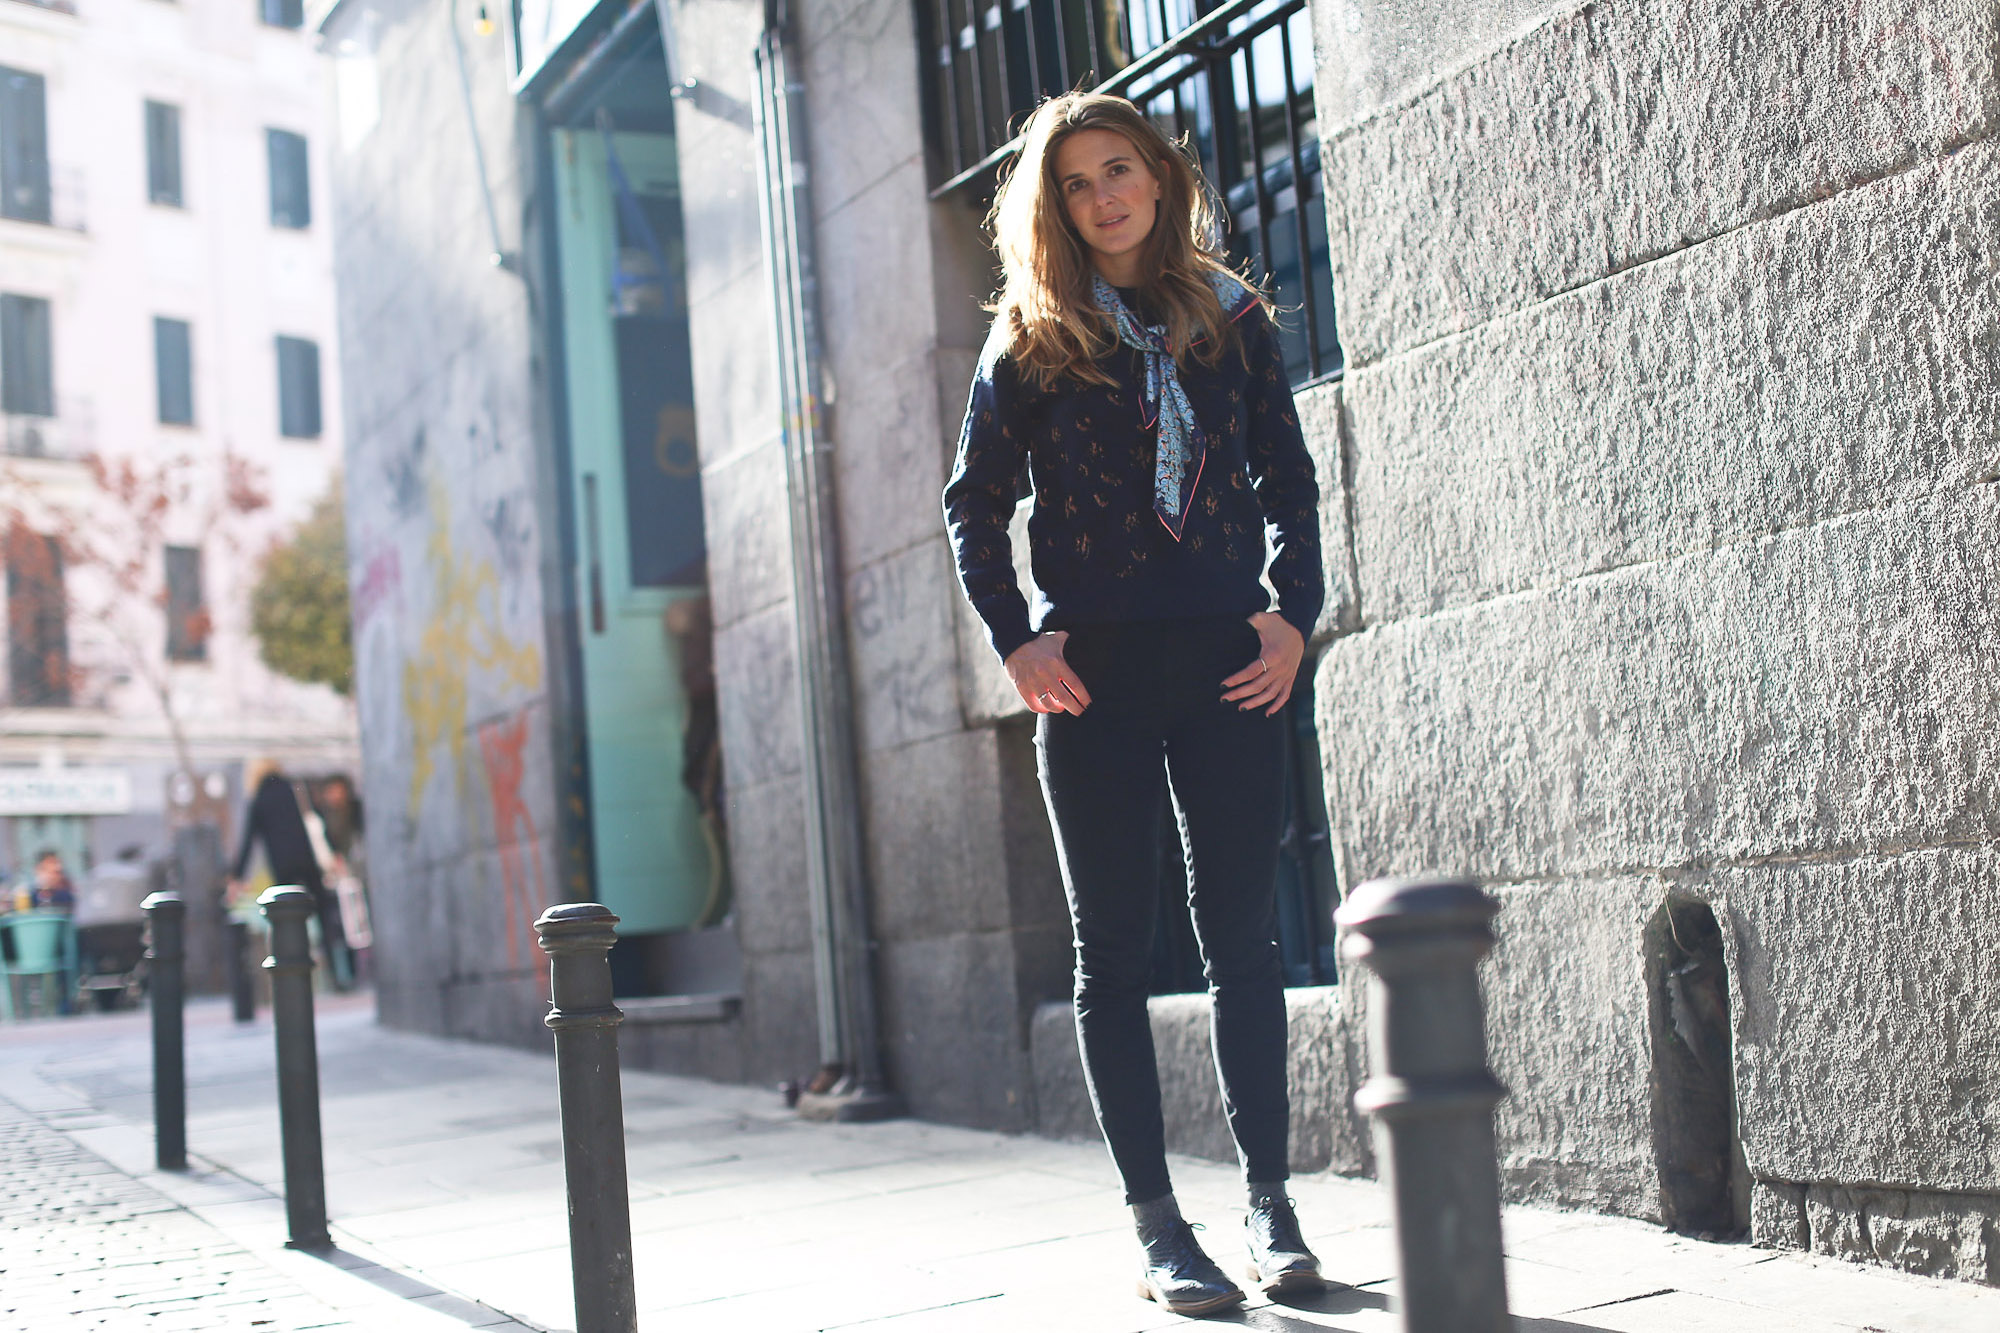 Clochet_streetstyle_fashionblogger_andotherstories_metallicflowersknit_ponsquintanabrogues_topshopjamiejeans_coswoolcoat-6